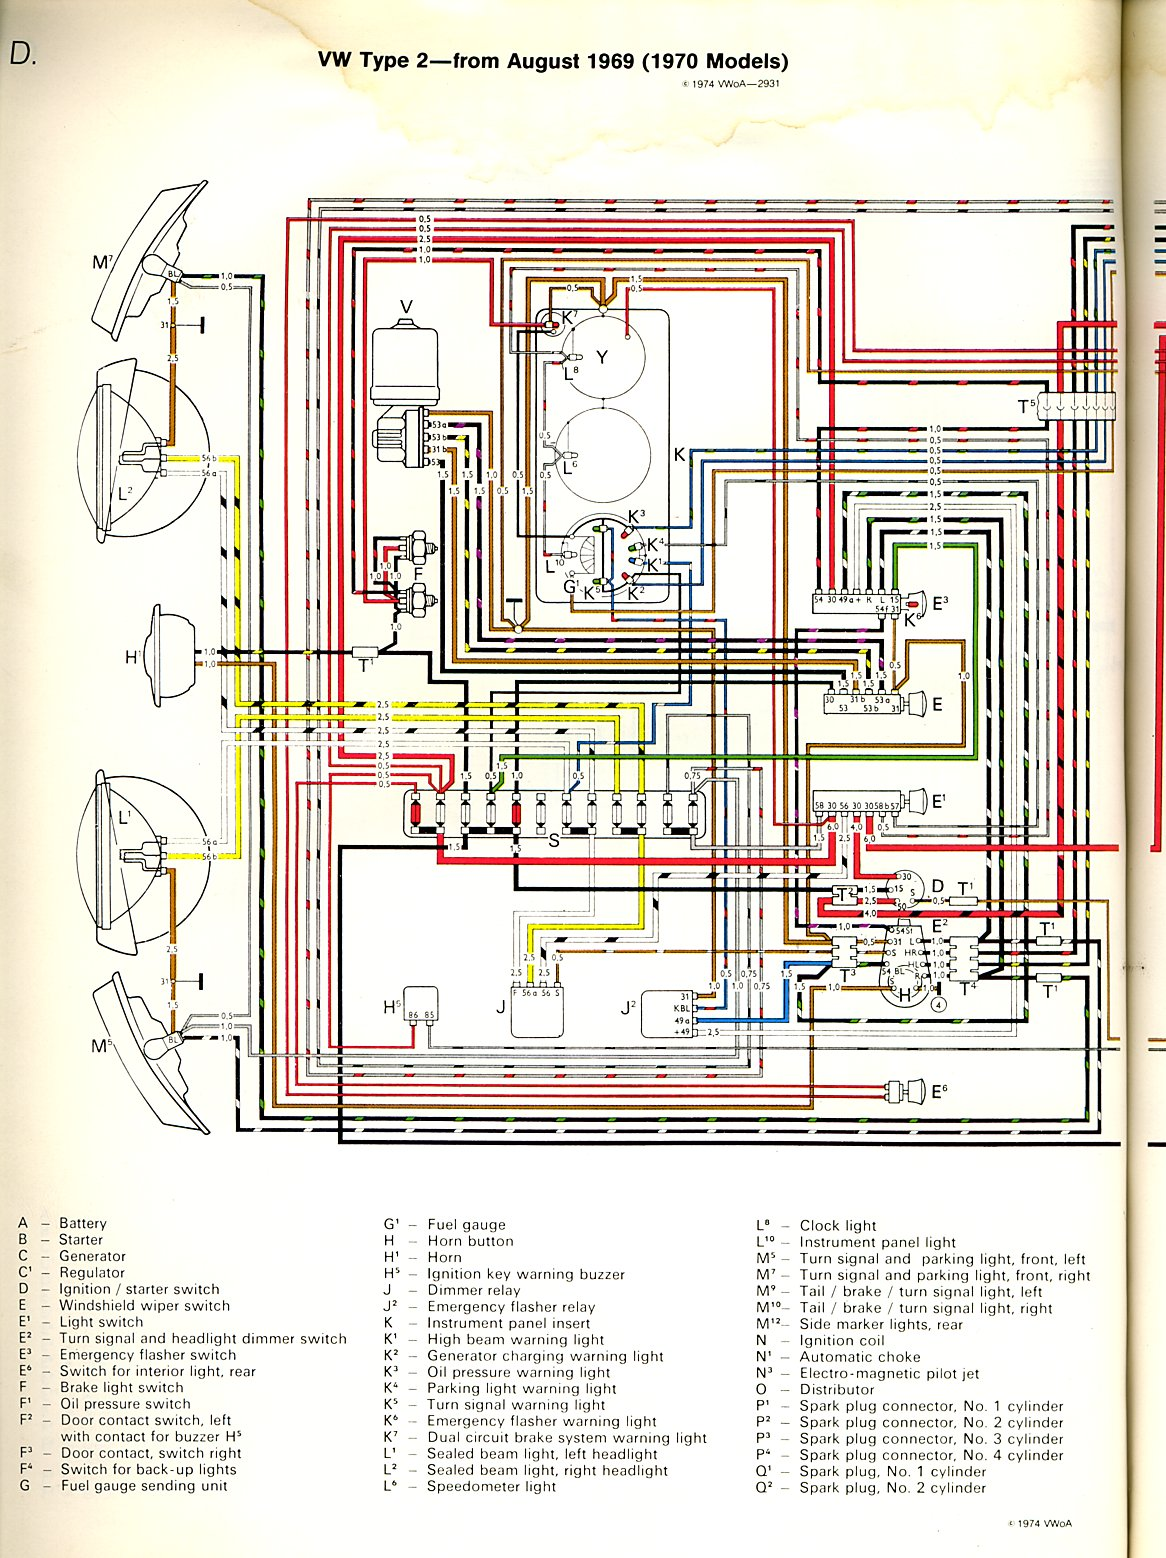 baybus_70a thesamba com type 2 wiring diagrams vw bus wiring diagram at fashall.co